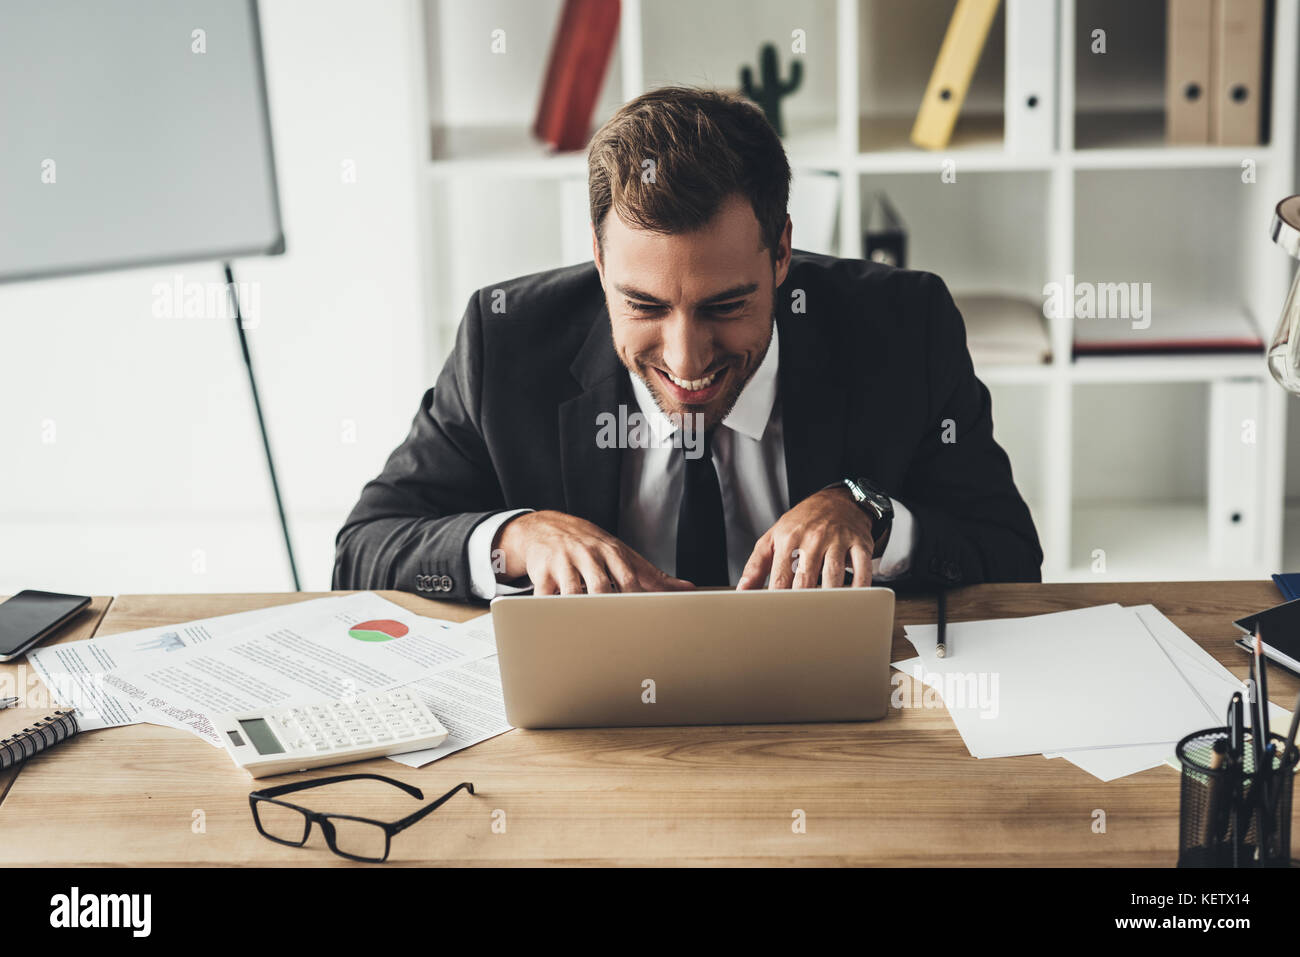 businessman working with laptop - Stock Image